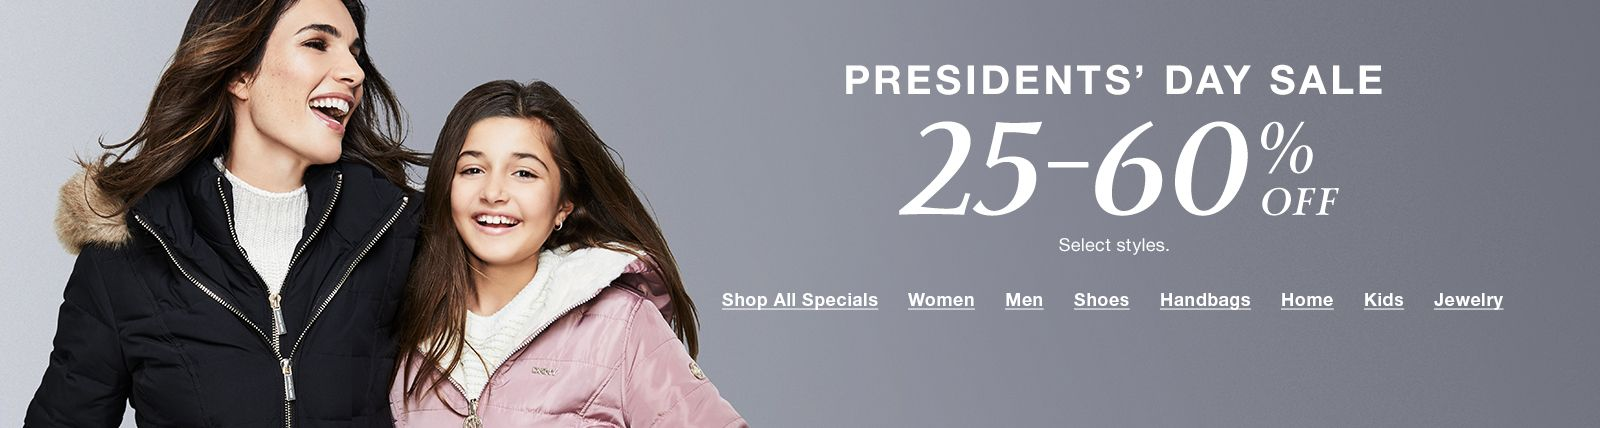 President's Day Sale, 25-60 % Off, Select styles, Shop All Specials, Women, Men, Shoes, Handbags, Home, Kids, Jewelry